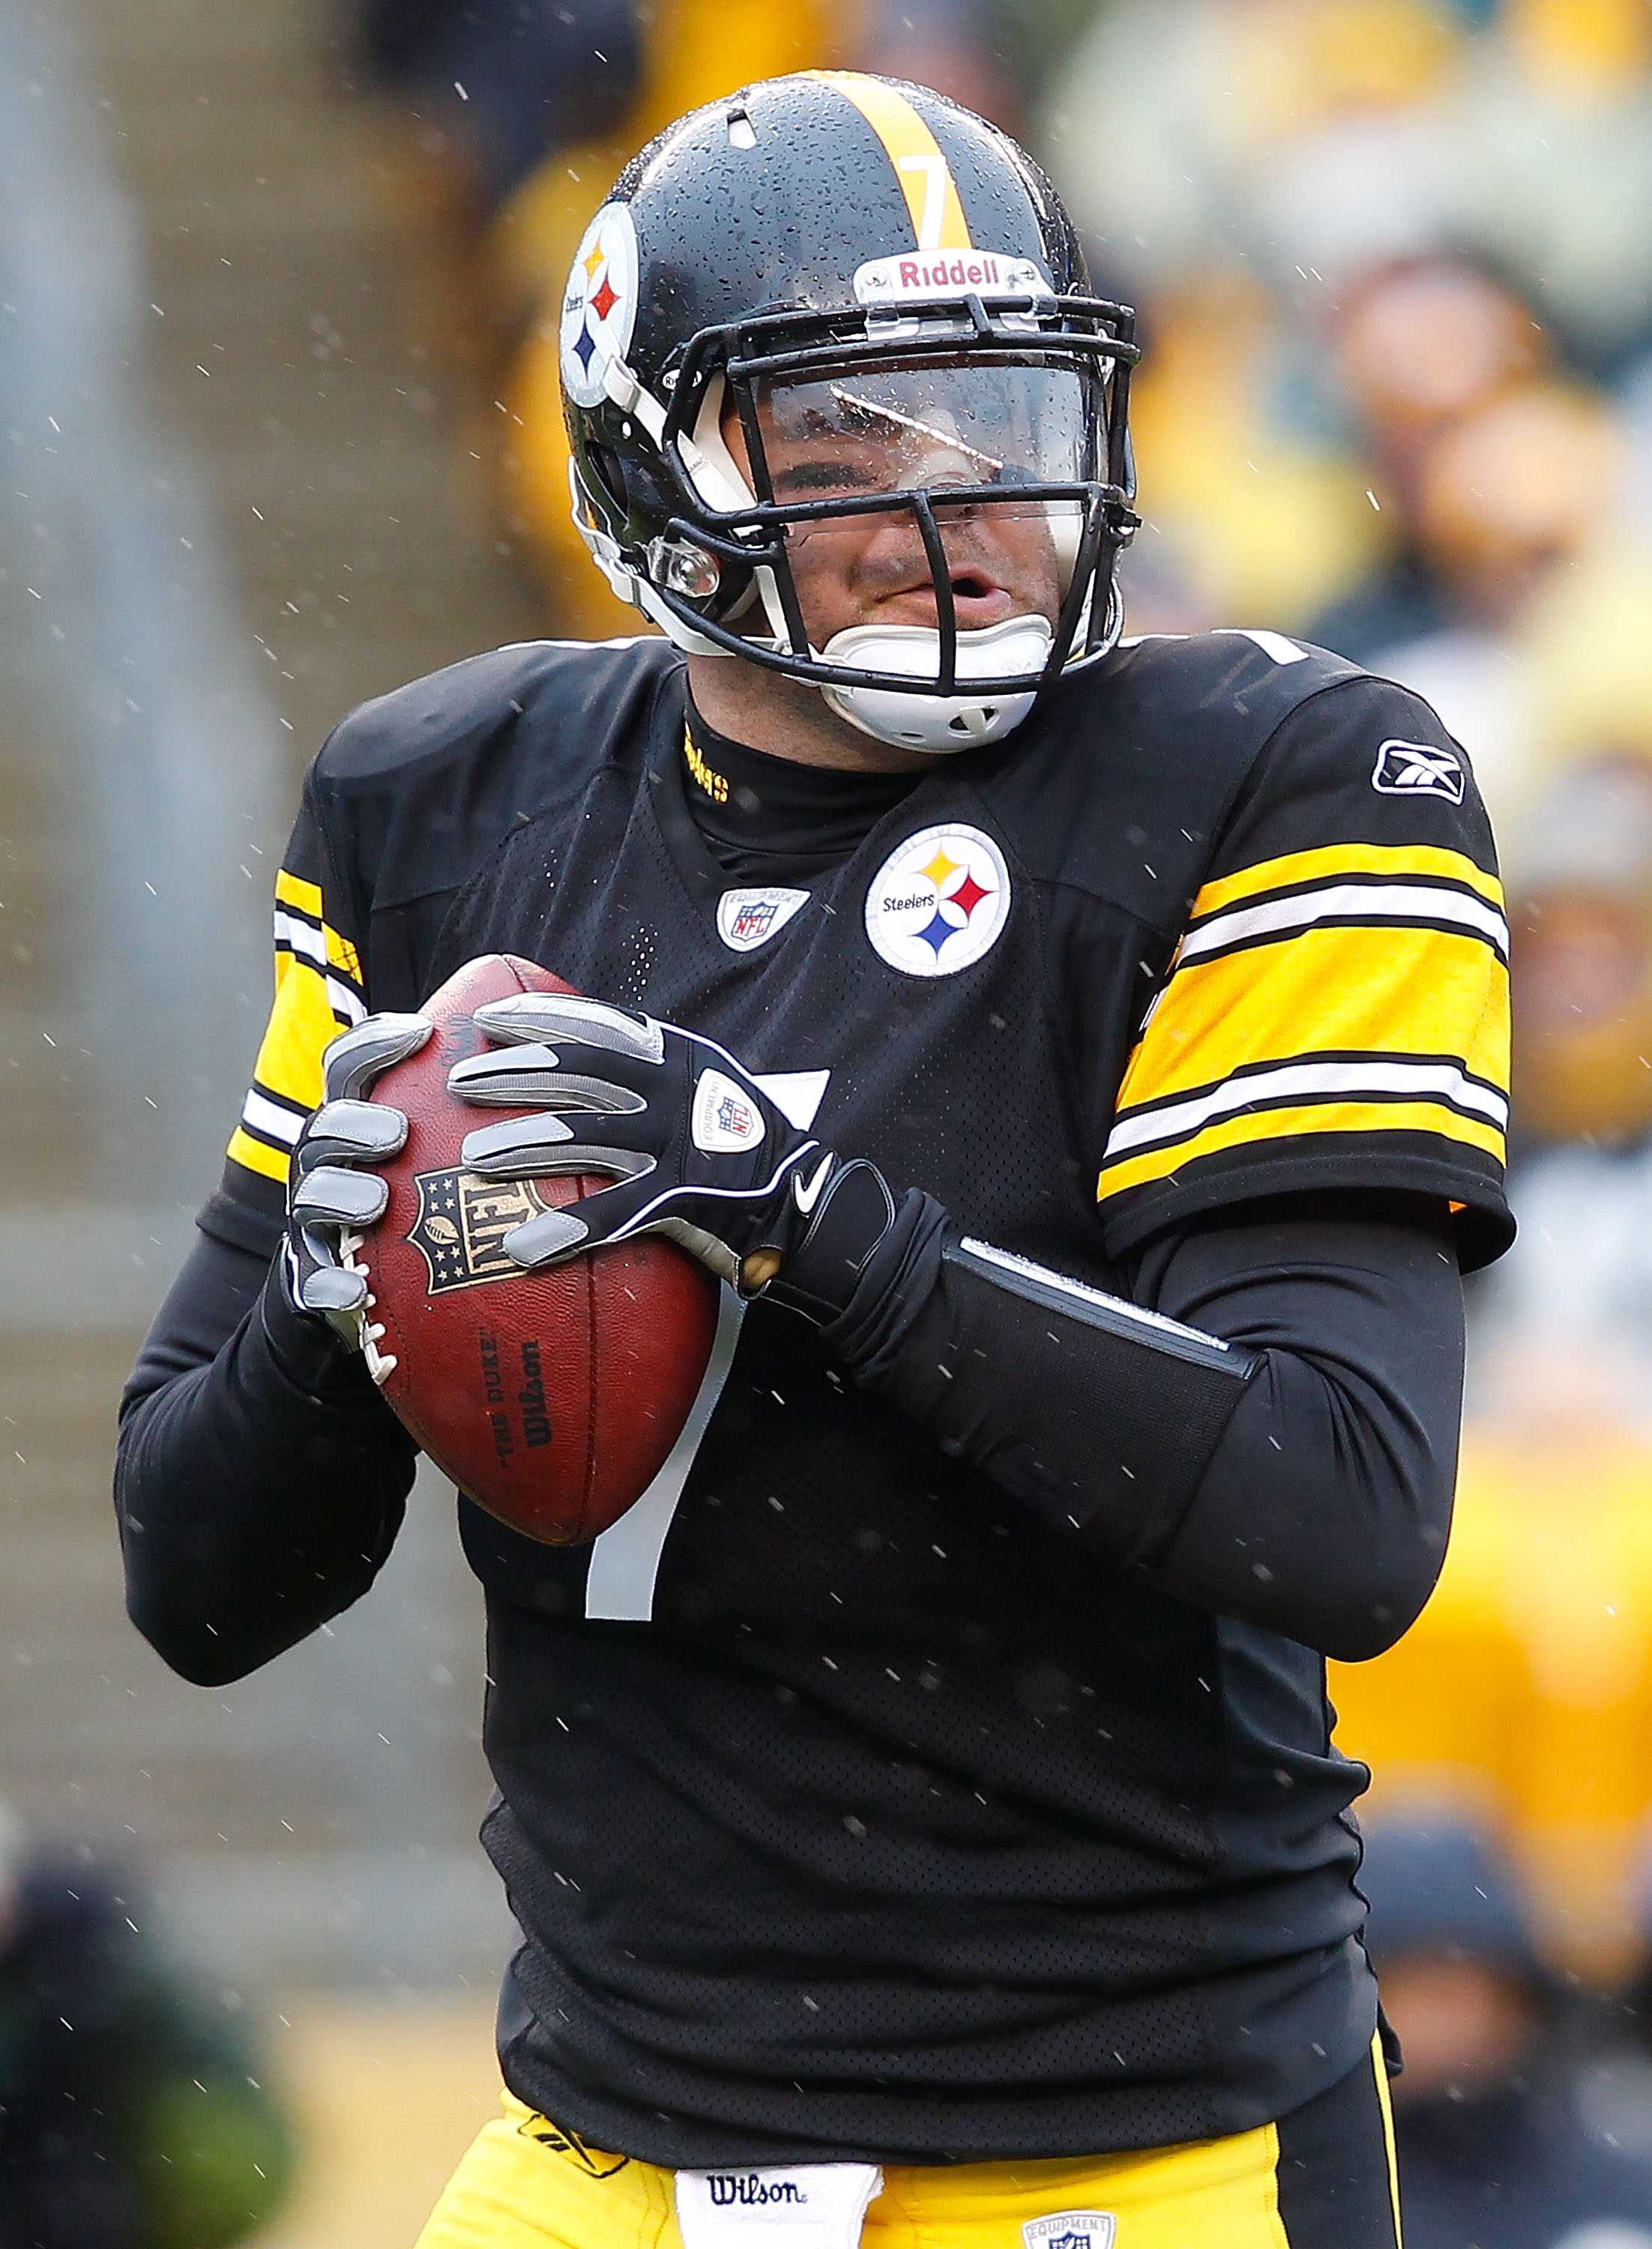 PITTSBURGH - DECEMBER 12:  Ben Roethlisberger #7 of the Pittsburgh Steelers drops back to pass against the Cincinnati Bengals during the game on December 12, 2010 at Heinz Field in Pittsburgh, Pennsylvania.  (Photo by Jared Wickerham/Getty Images)